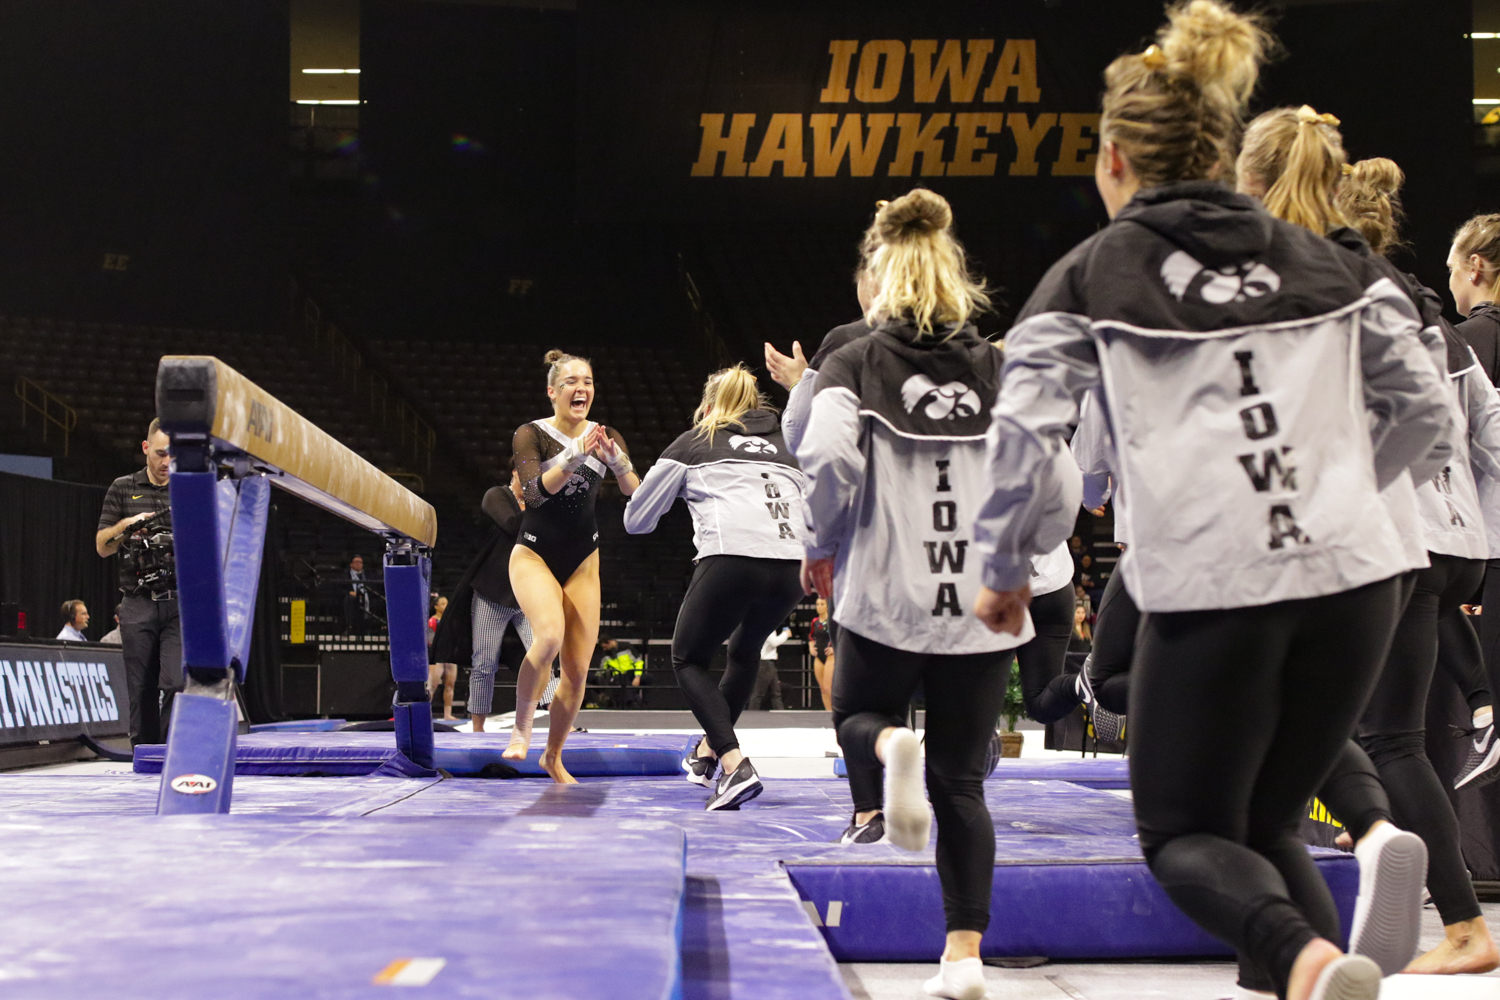 Iowa Gymnast Allie Gilchrist celebrates with her team during a gymnastics meet against Rutgers on Saturday, Jan. 26, 2019. The Hawkeyes defeated the Scarlet Knights 194.575 to 191.675.